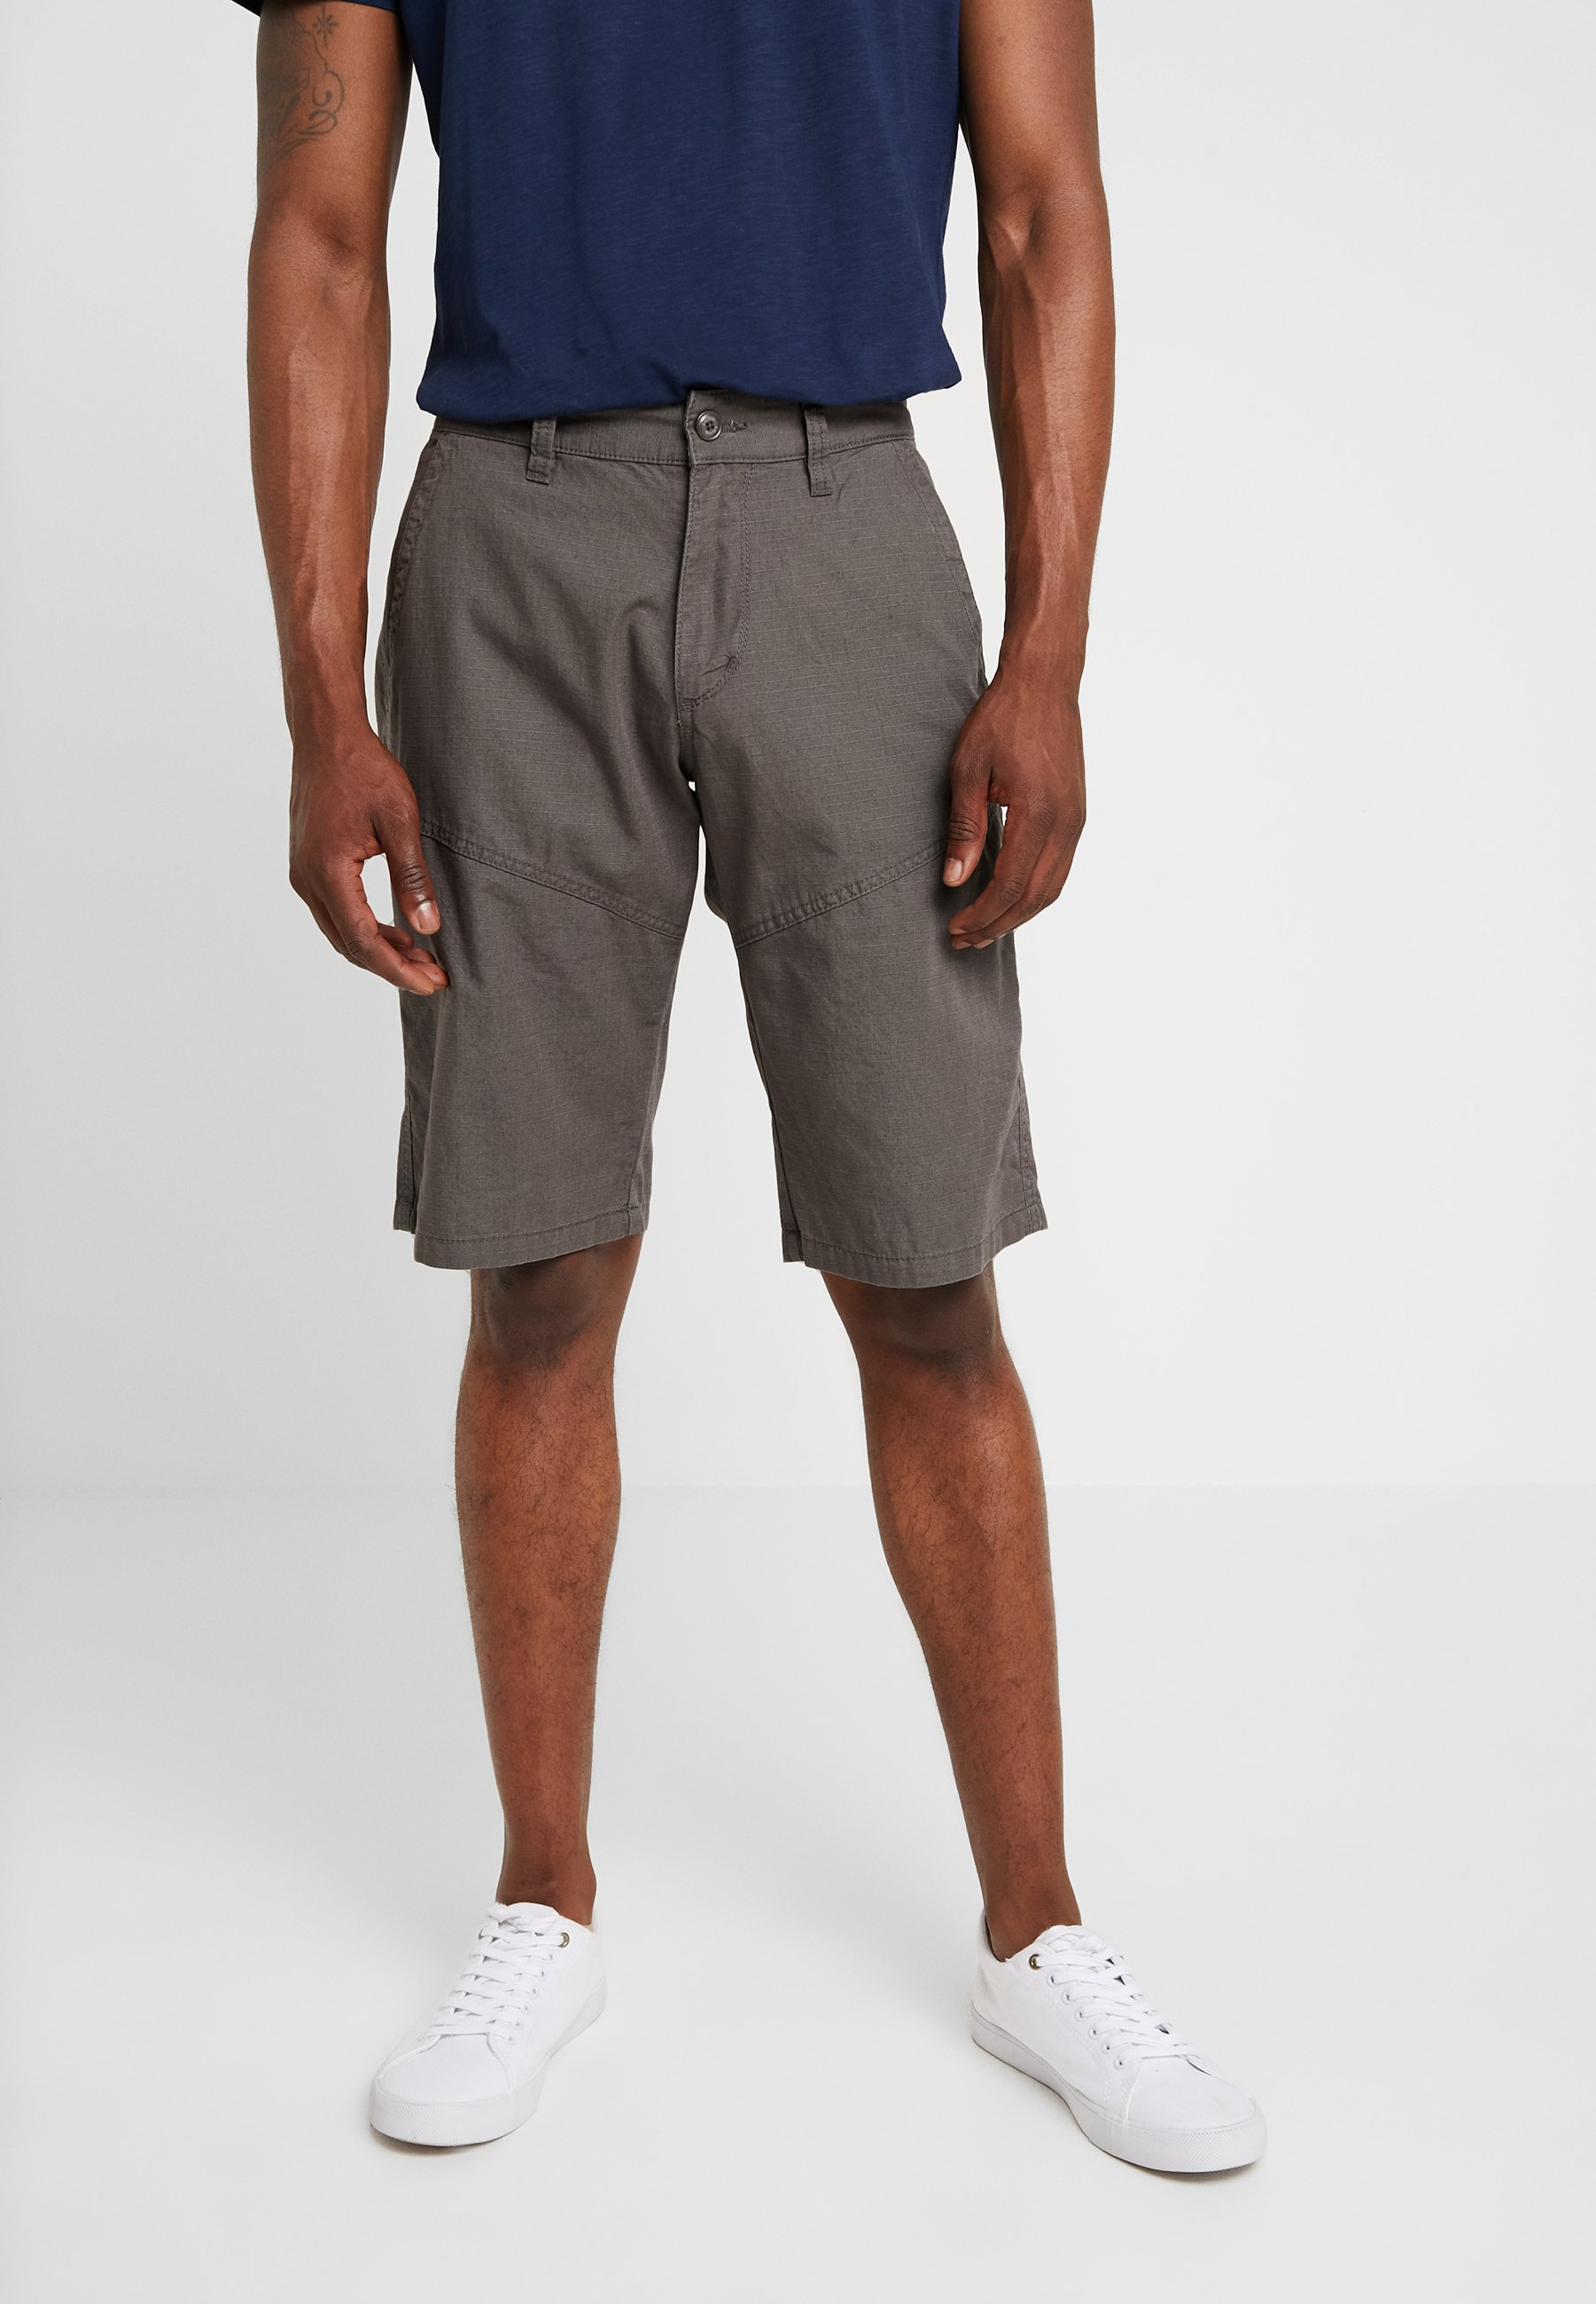 RelaxedShort oliver S Grey Whale oliver Grey oliver S RelaxedShort Whale S D2Y9IeEHbW